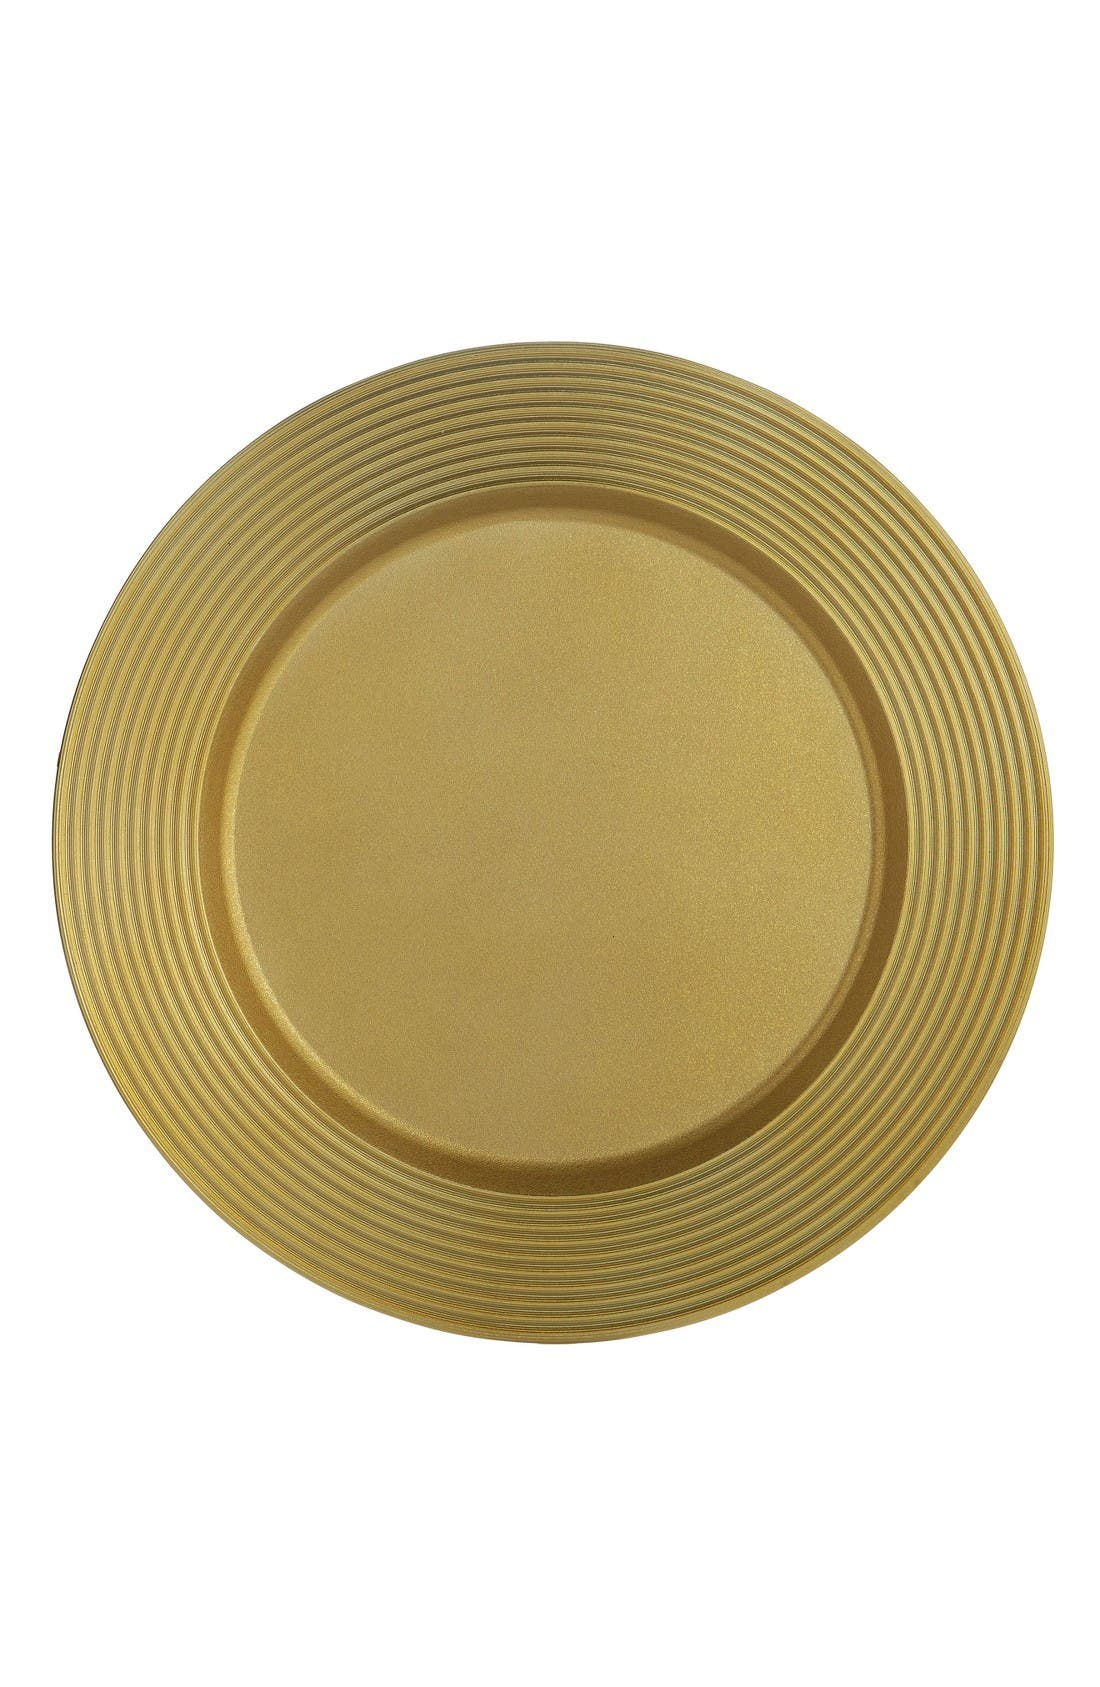 Michael Aram Wheat Charger Plate